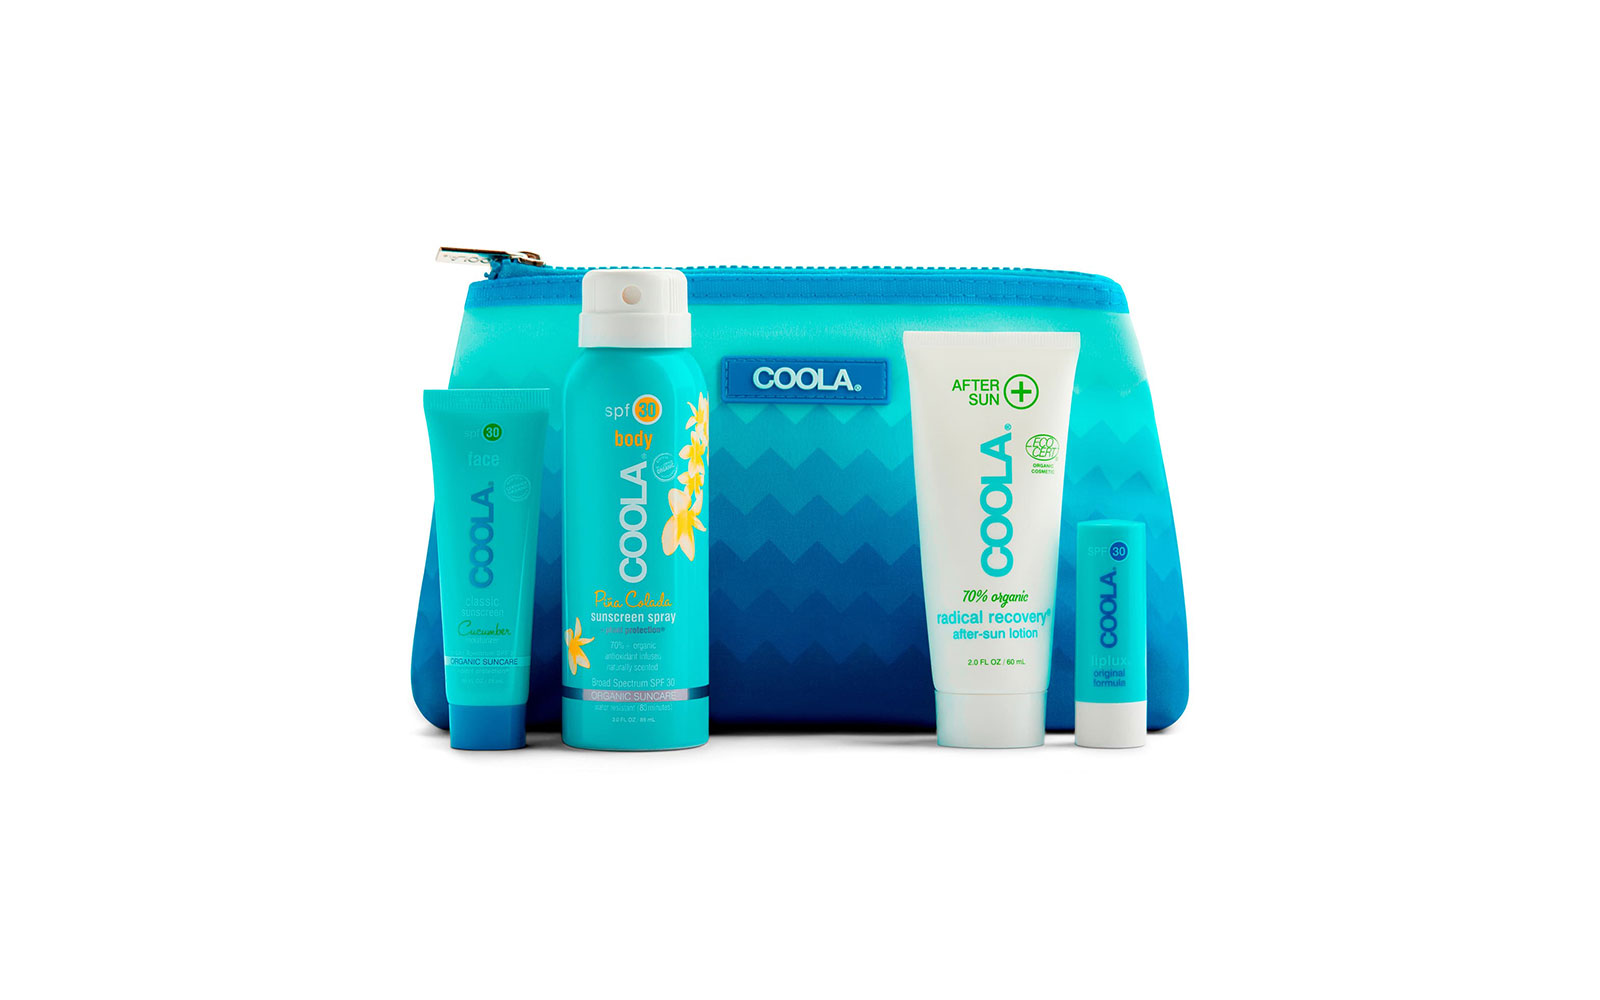 Coola travel suncare kit